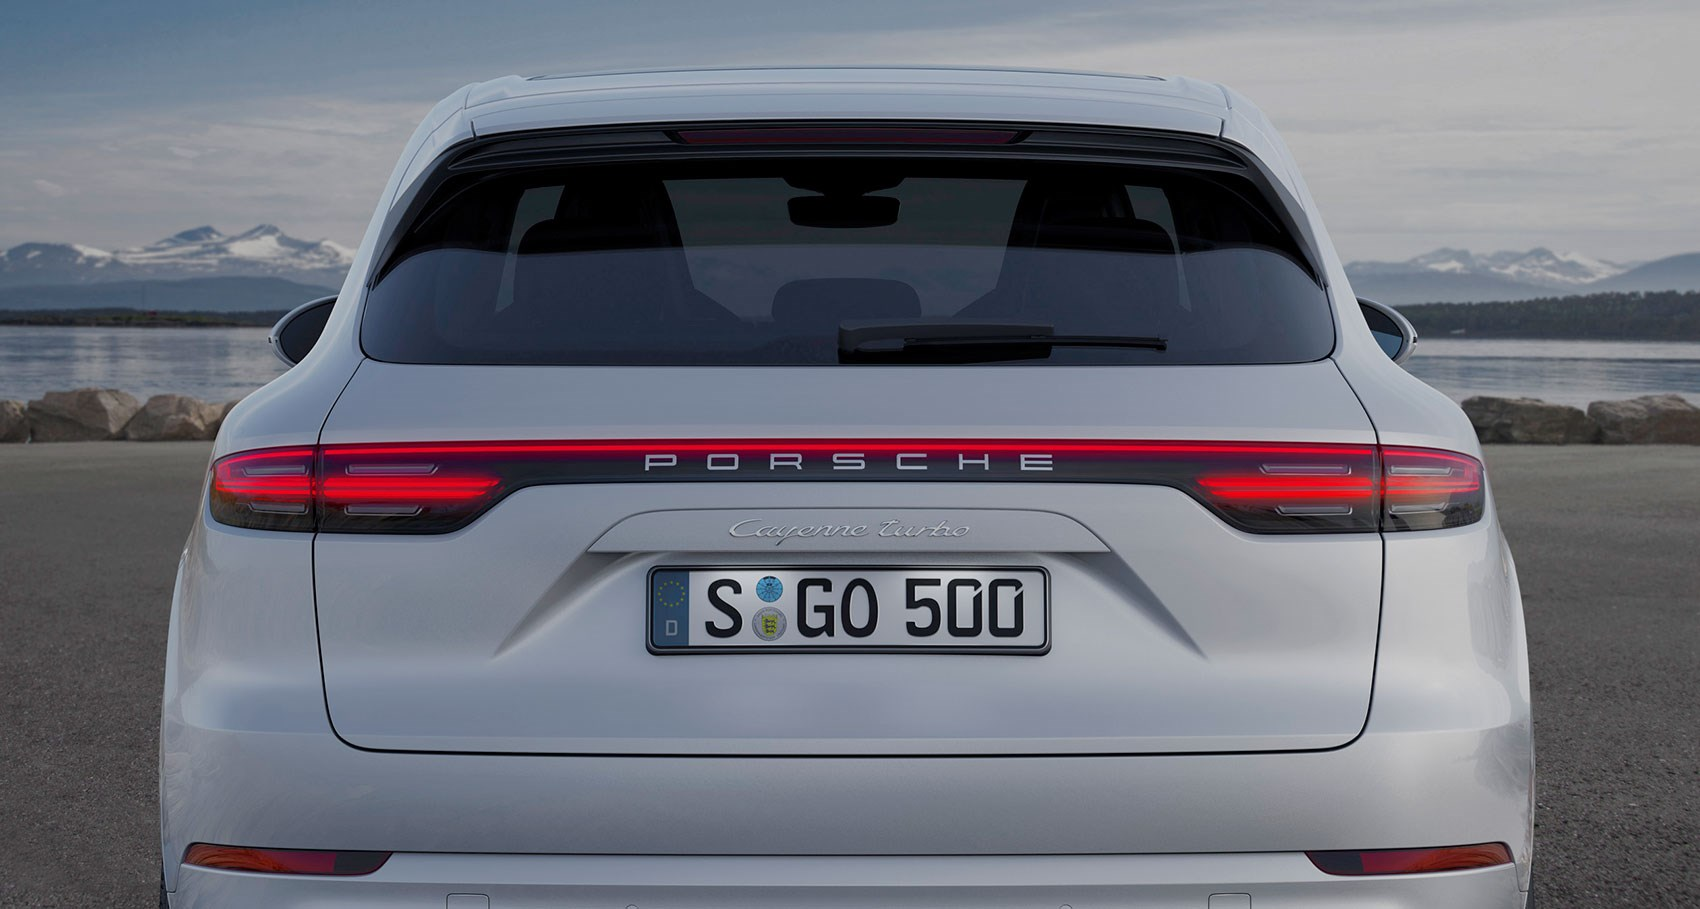 2018 porsche turbo. exellent turbo deployable popup rear spoiler on new 2018 porsche cayenne turbo for porsche turbo